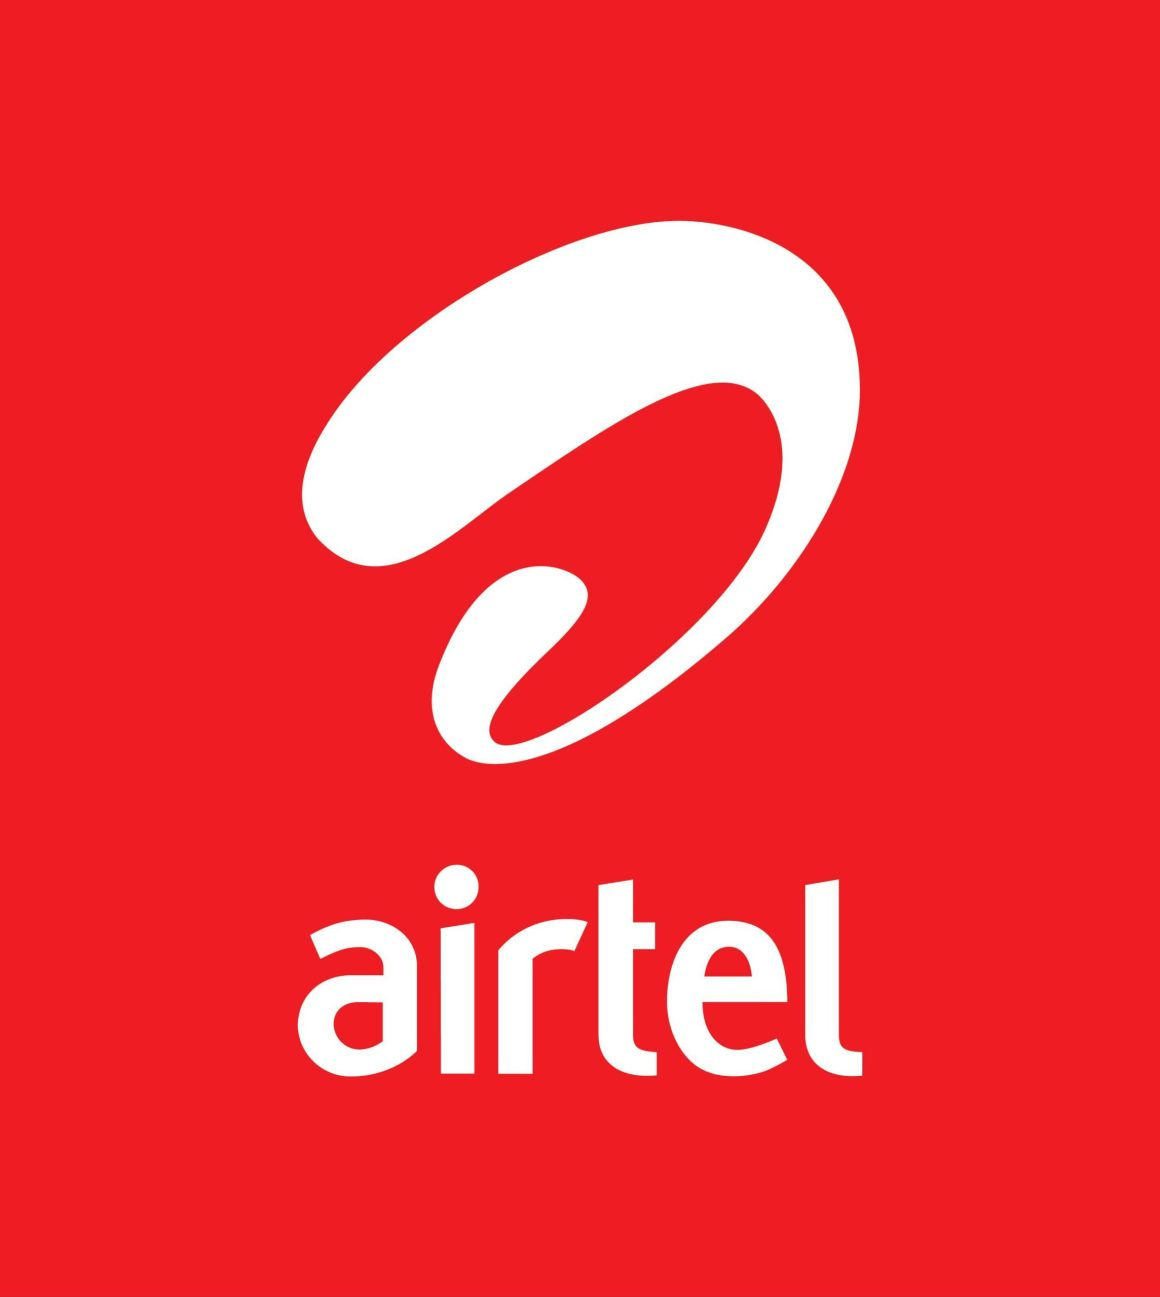 How To Get Airtel 4GB DataFree (Learn How to Setup Code). Get Airtel 4GB for Free (Learn How to Setup Code) Airtel 4GB Free, 4G, also known as Long Term Evolution